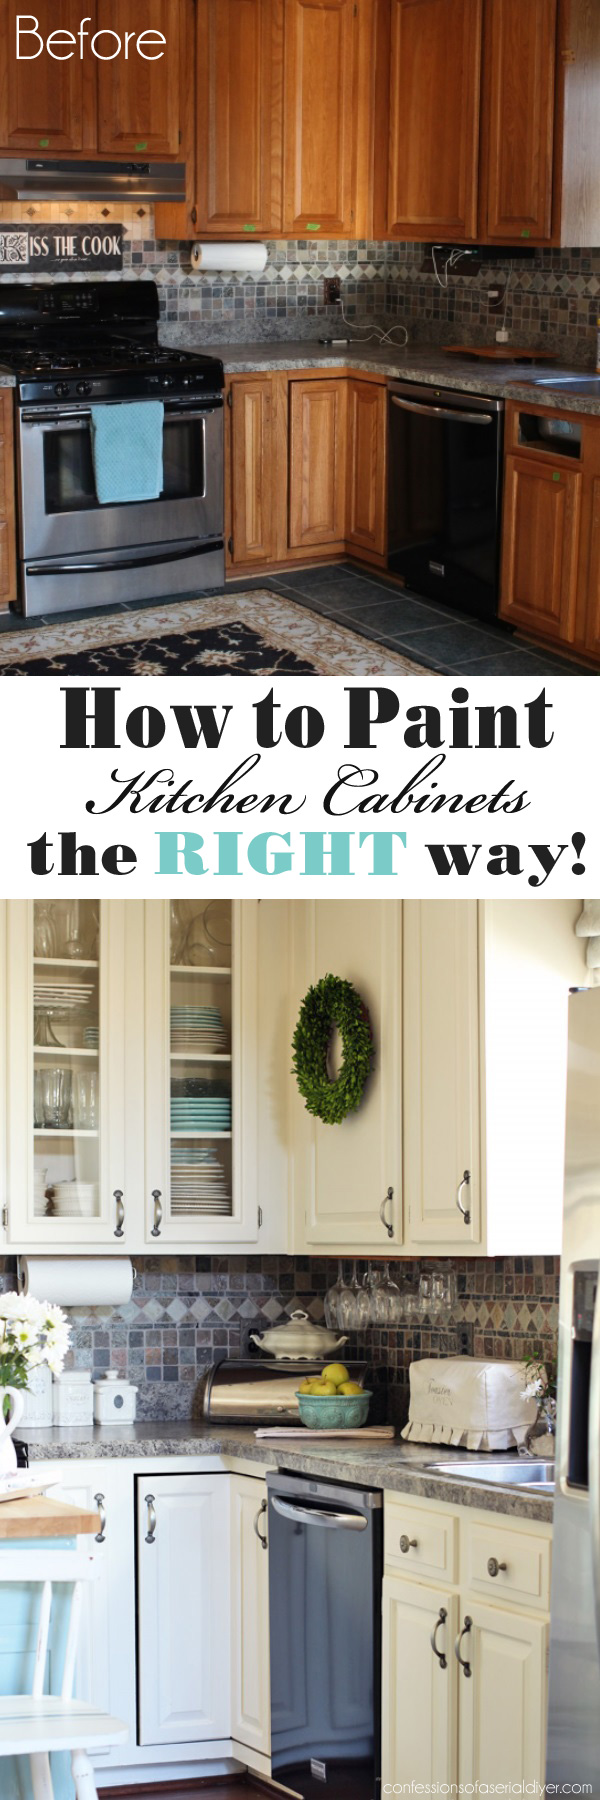 How Do I Spray Paint My Kitchen Cabinets